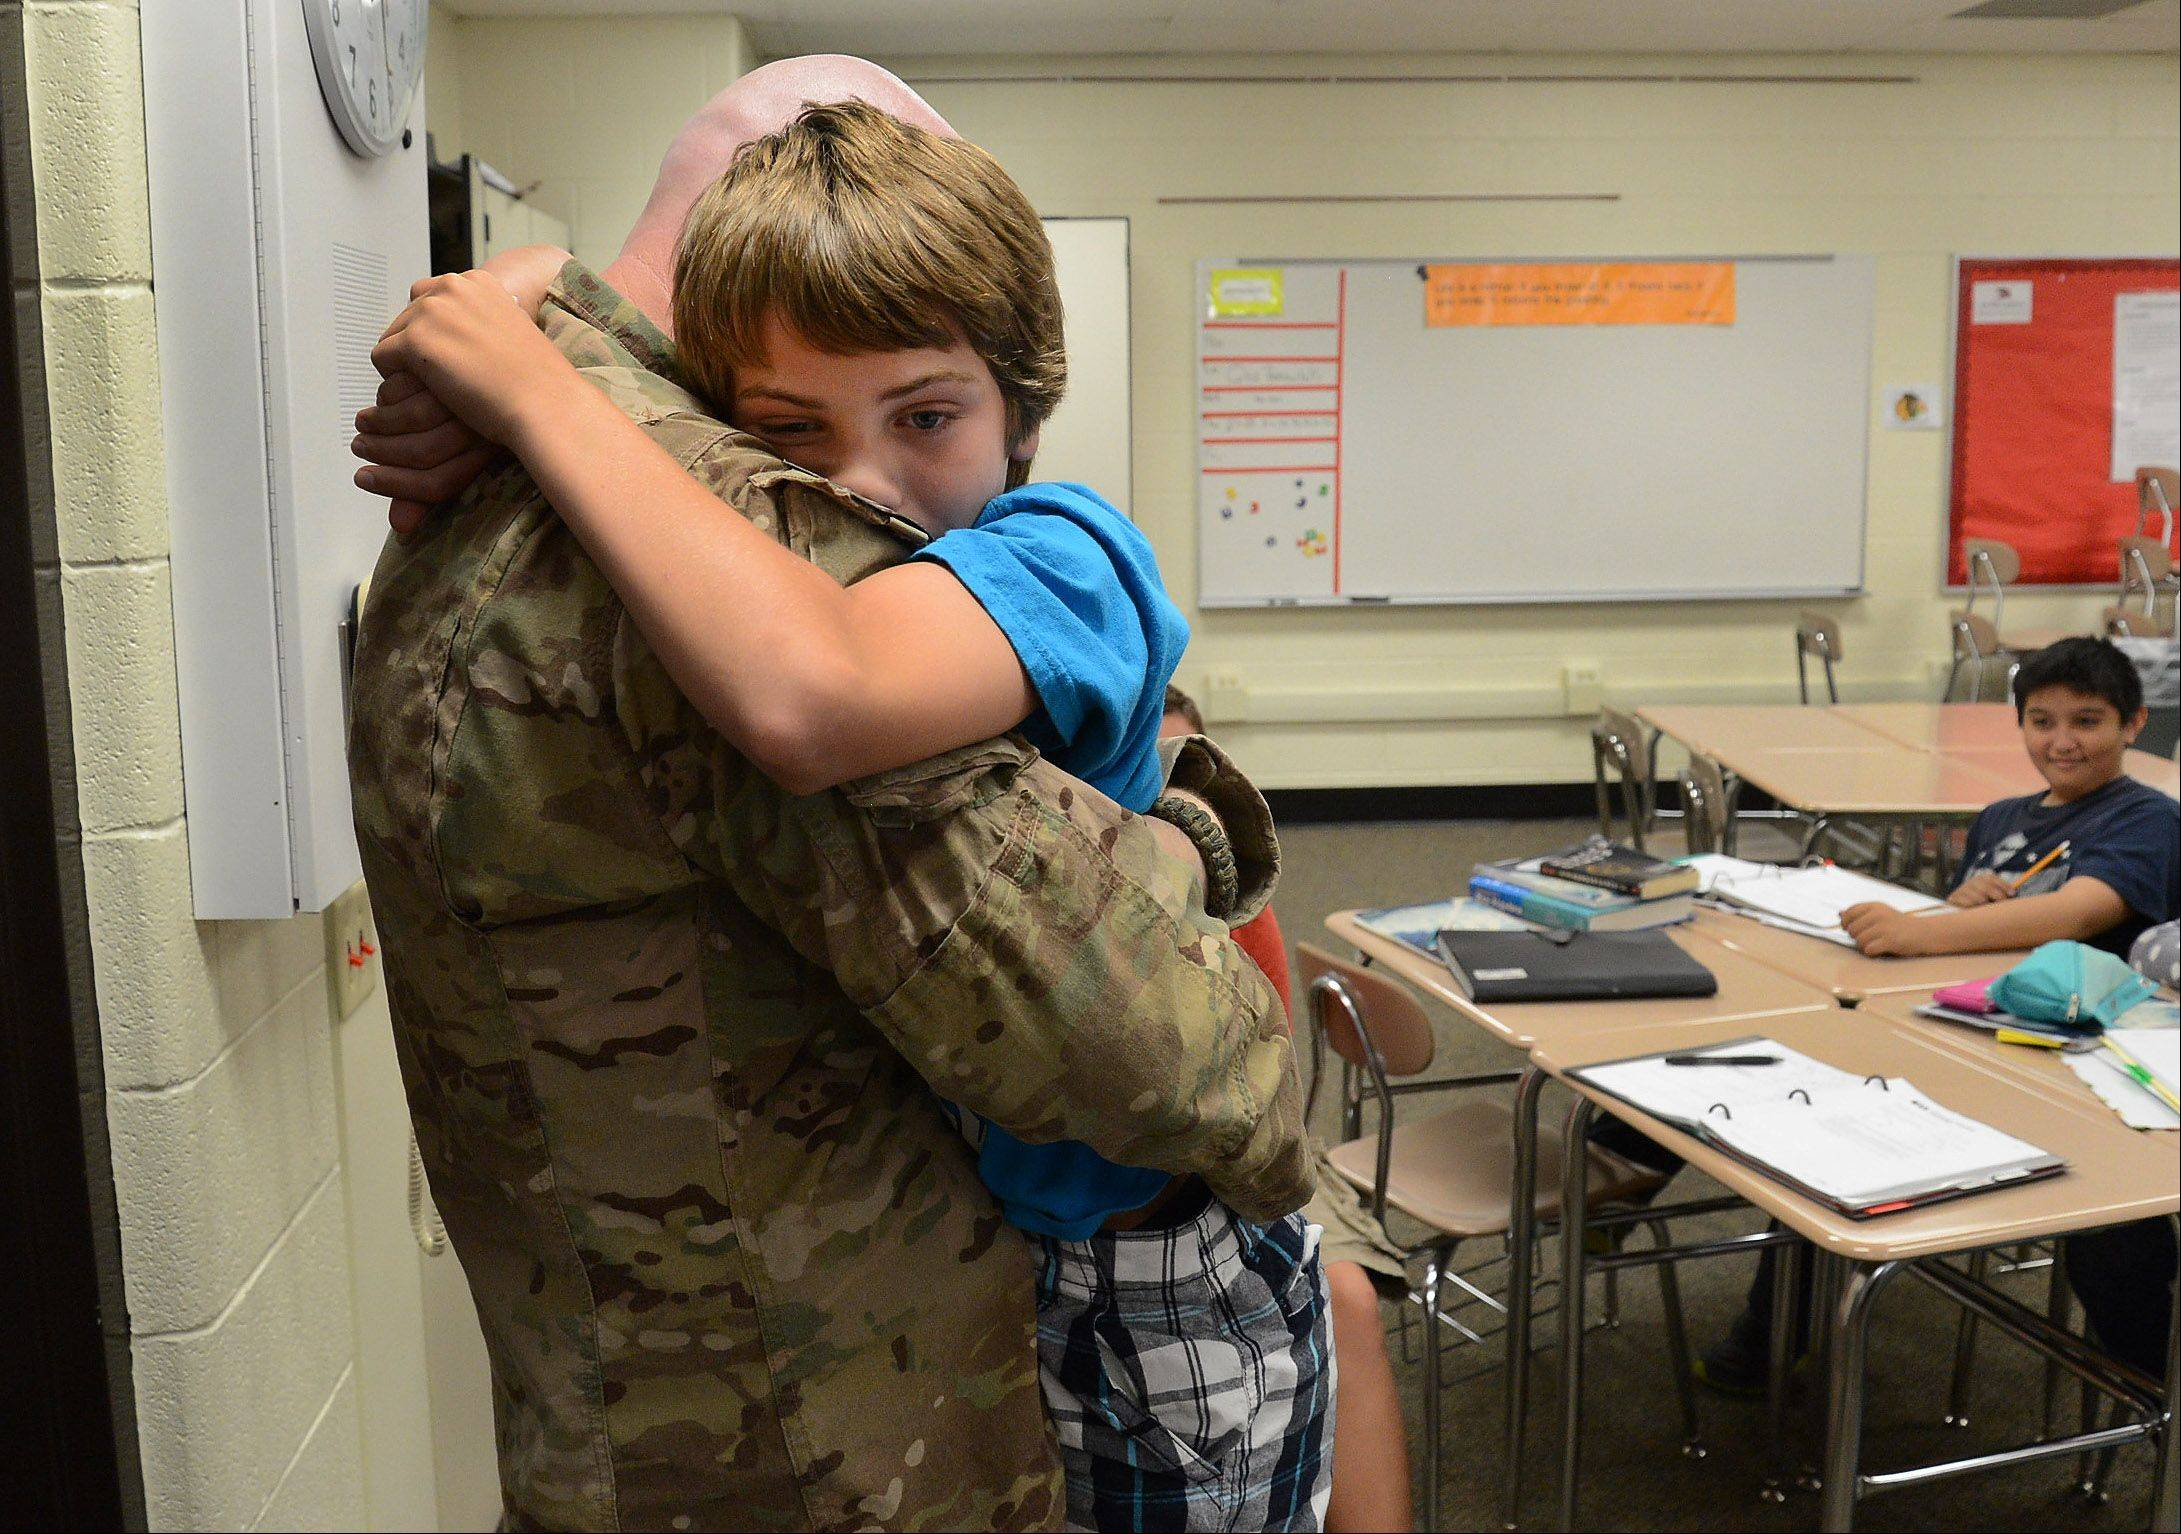 Navy Chief Gunner's Mate Patrick Fissette surprises his son, Tristan, at Mead Junior High School in Elk Grove Village Friday after returning home from his last tour of duty.